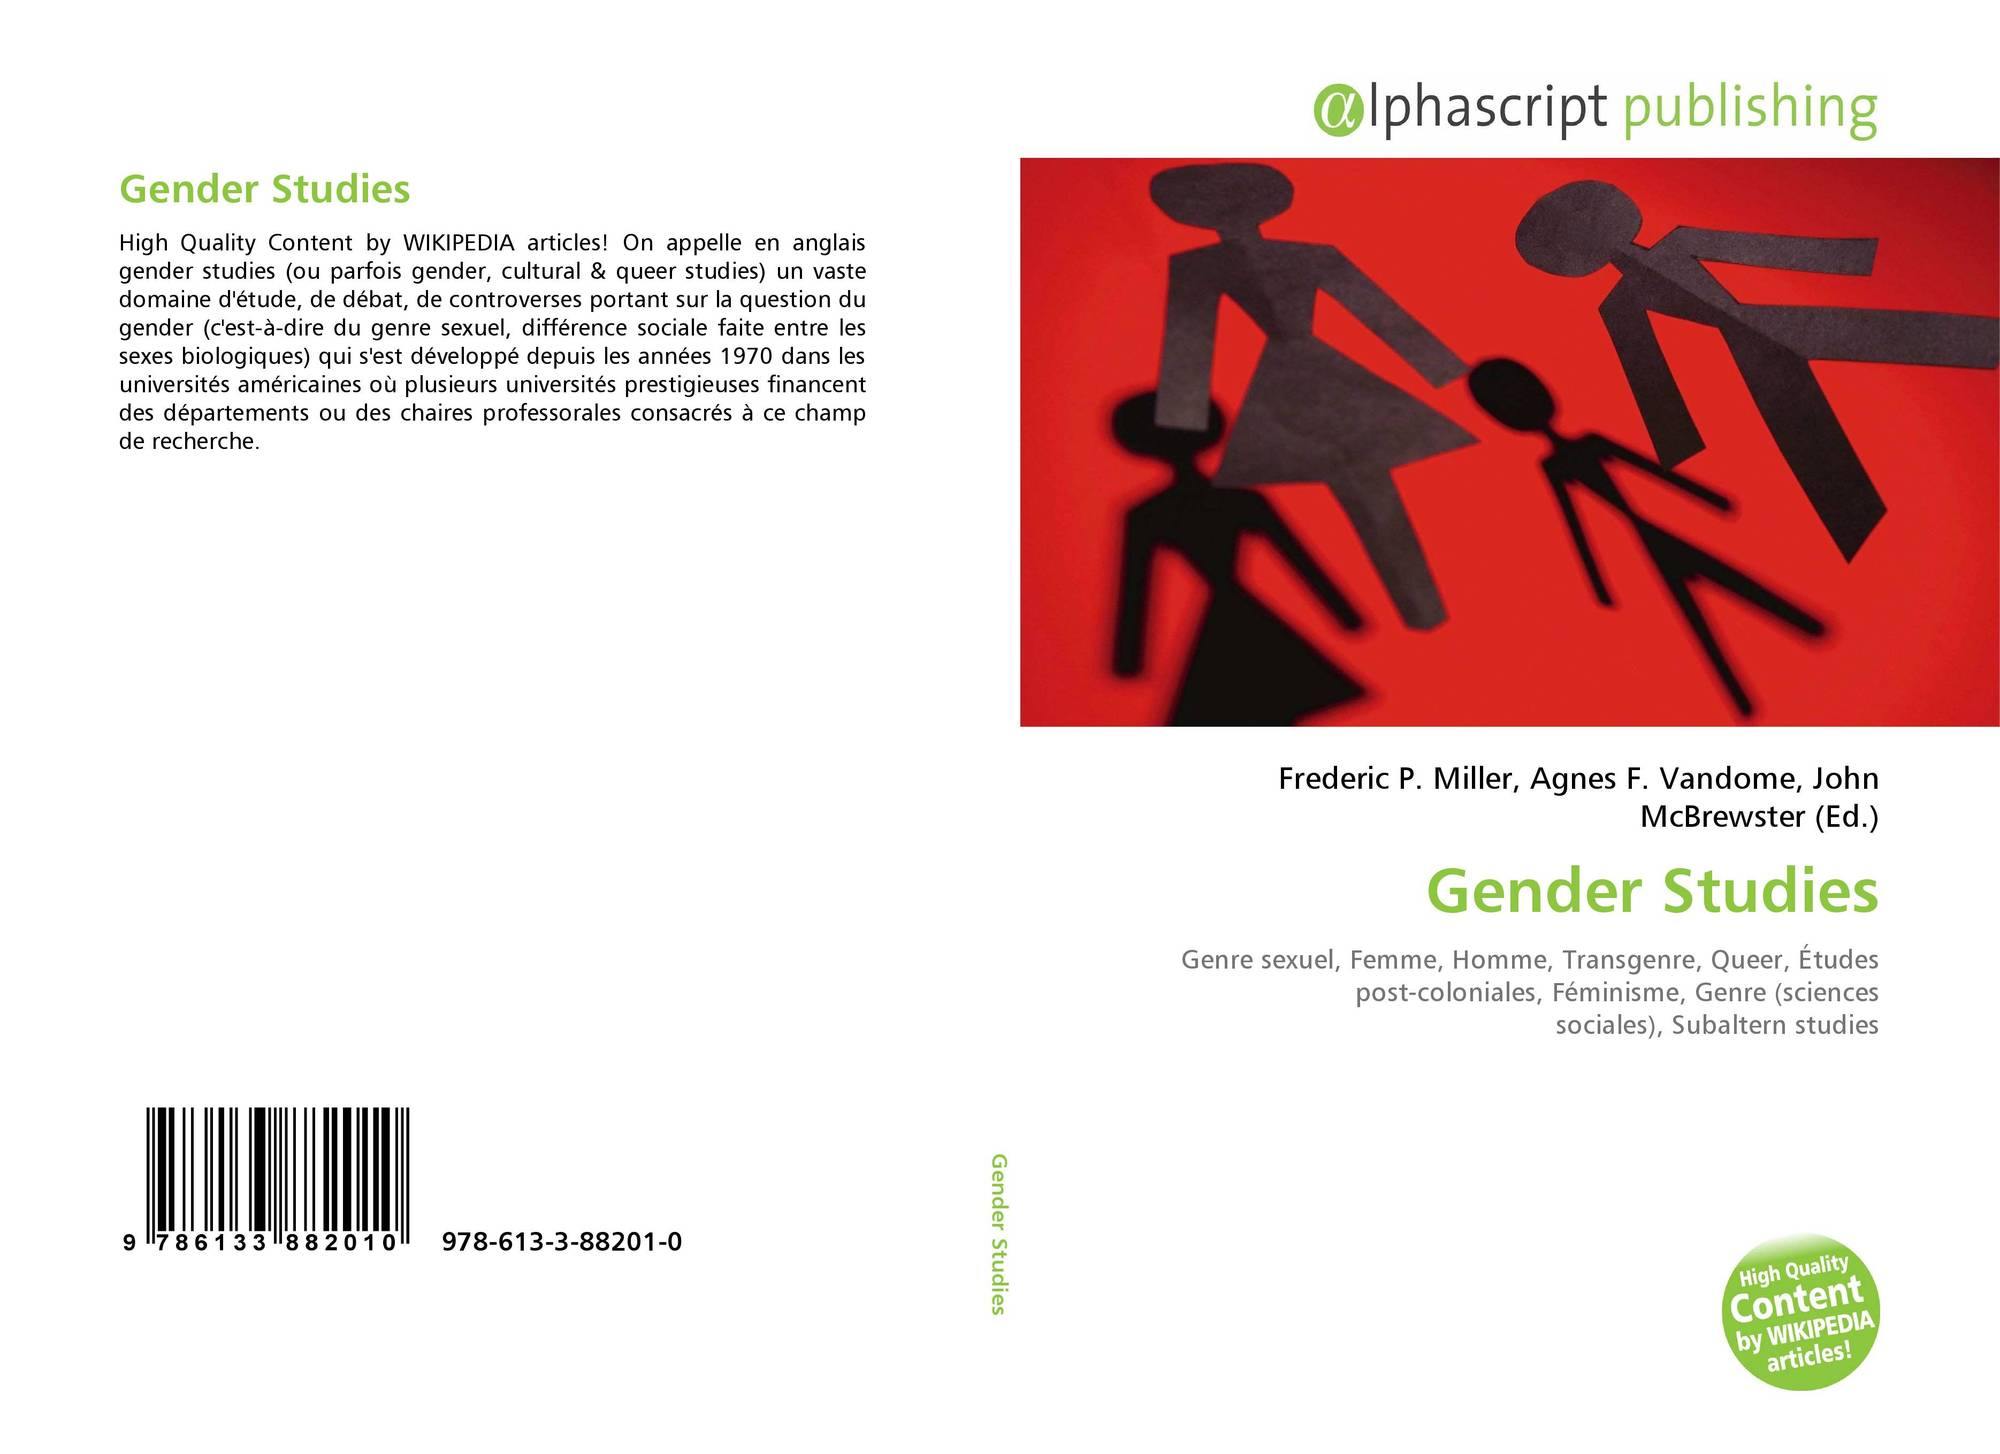 genre scientific censuring and gender roles Gender, science and technology scientific communities, non-governmental organizations and civil society modify gender roles.